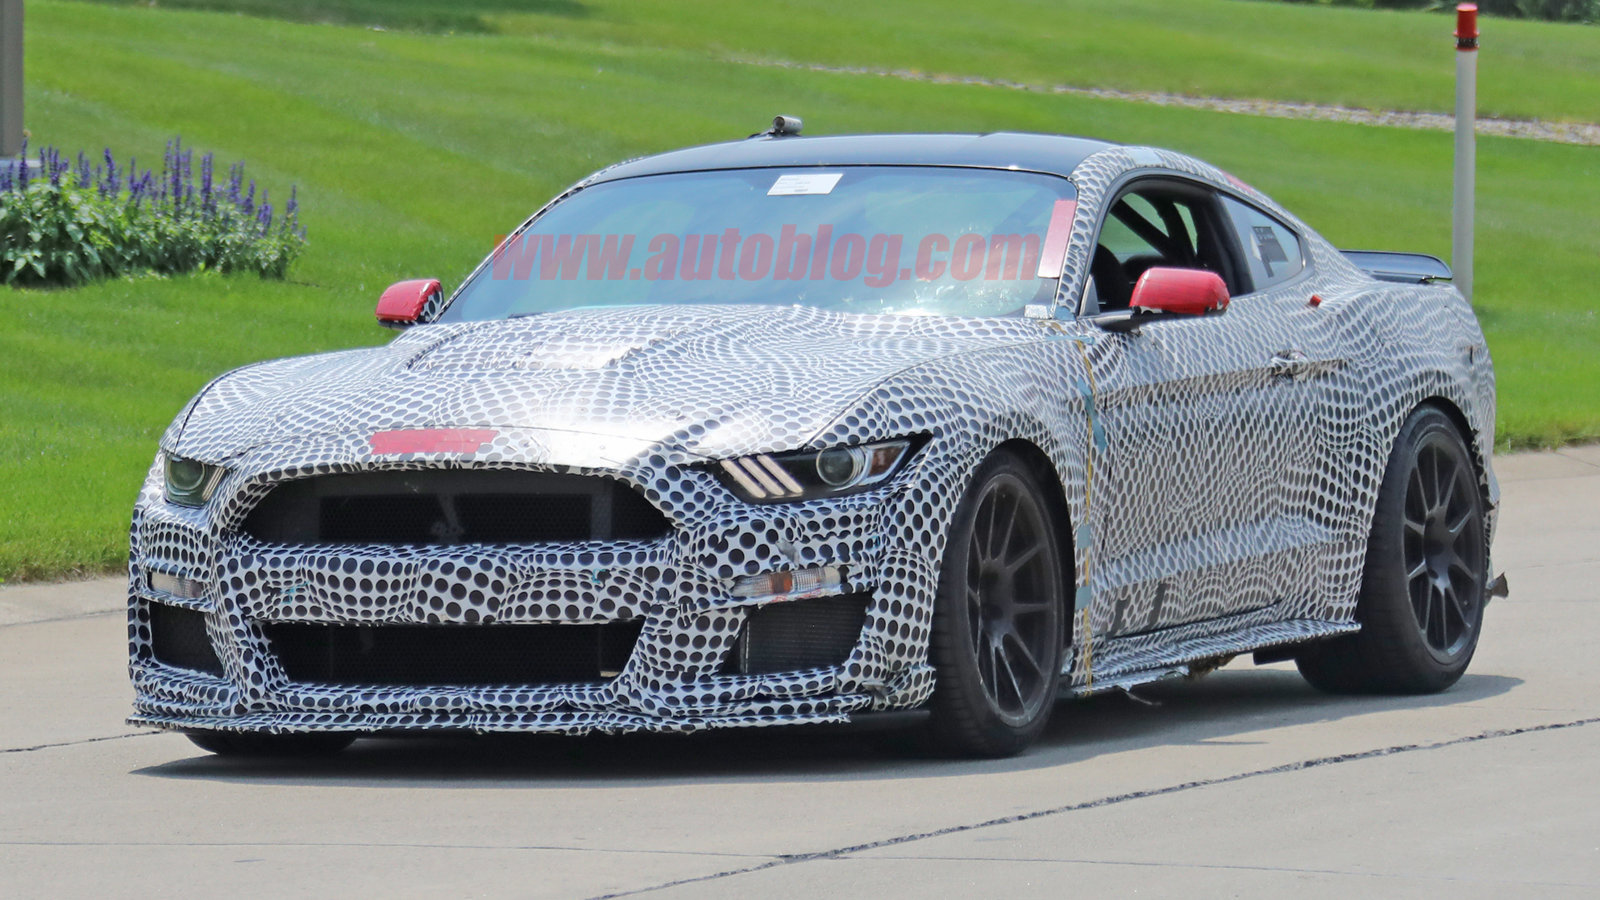 2019-ford-mustang-shelby-gt500-02-1.jpg